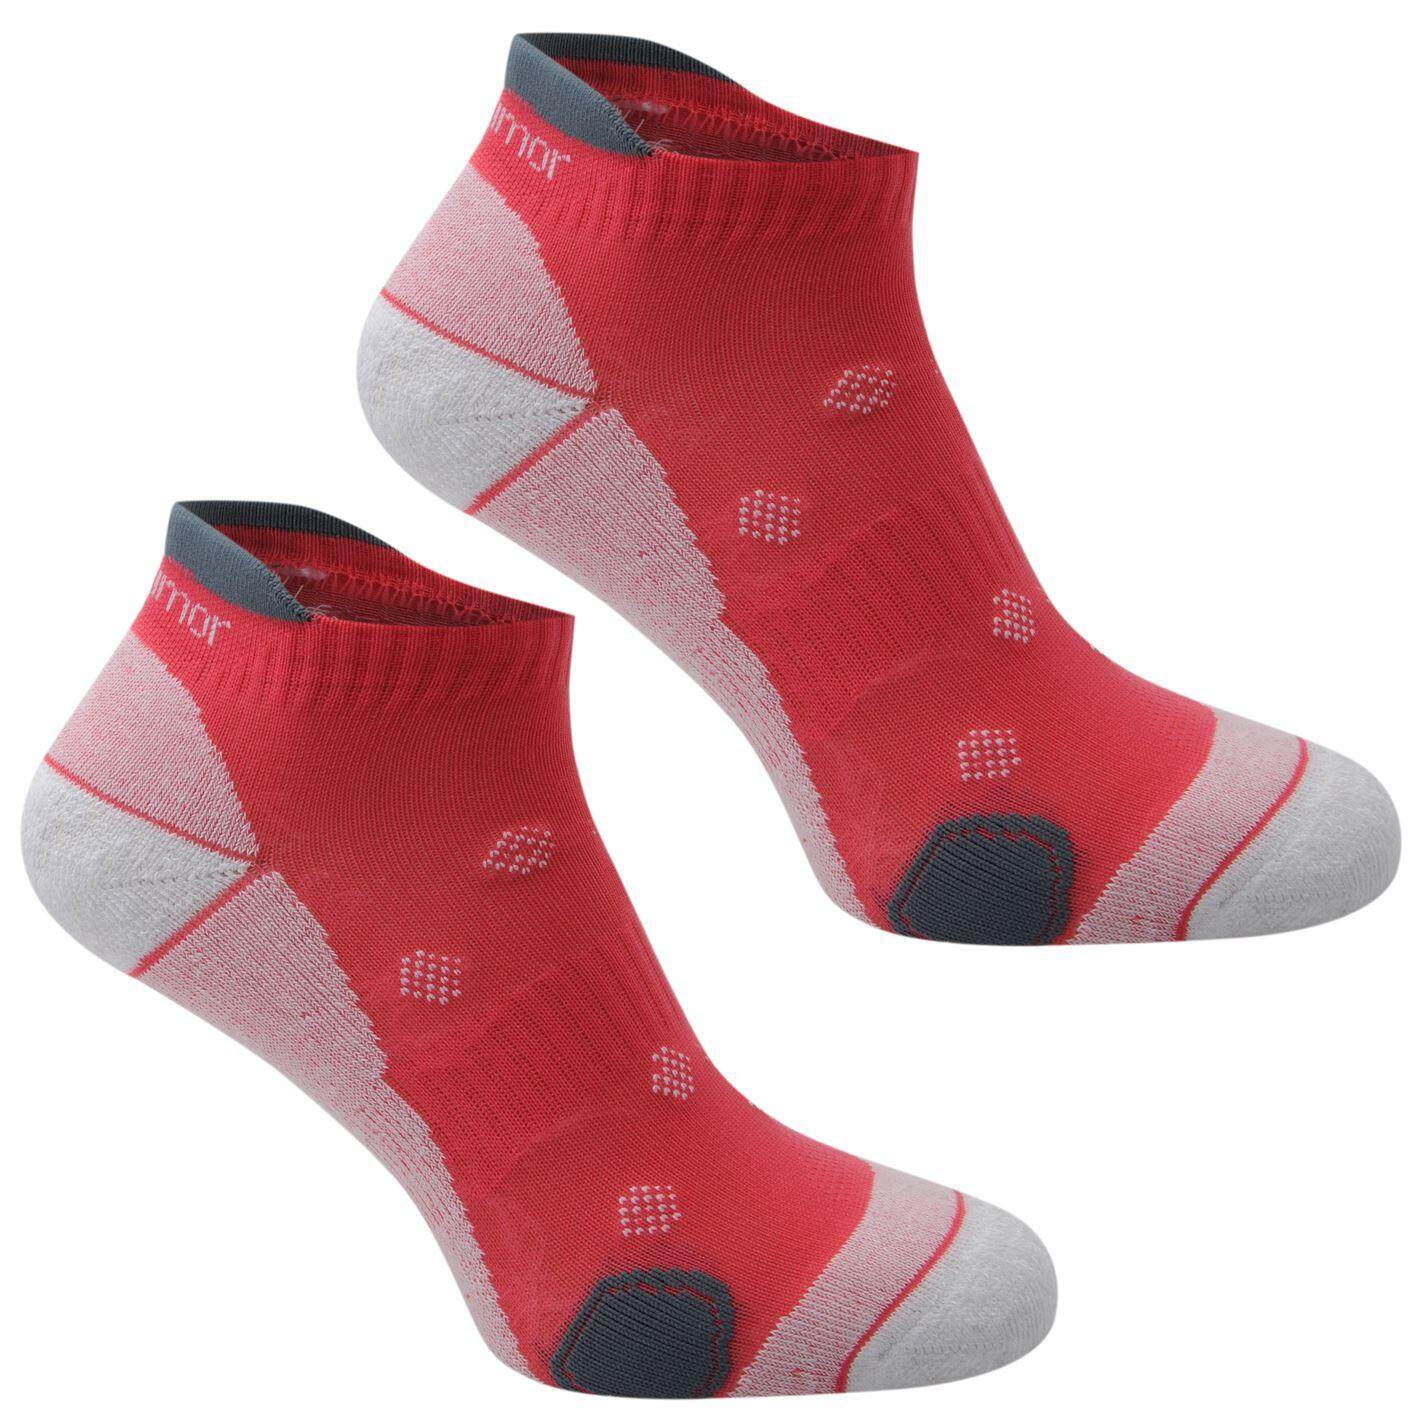 Karrimor Womens 2 Pack Running Socks (hot Pink) By Sports Direct Mst Sdn Bhd.